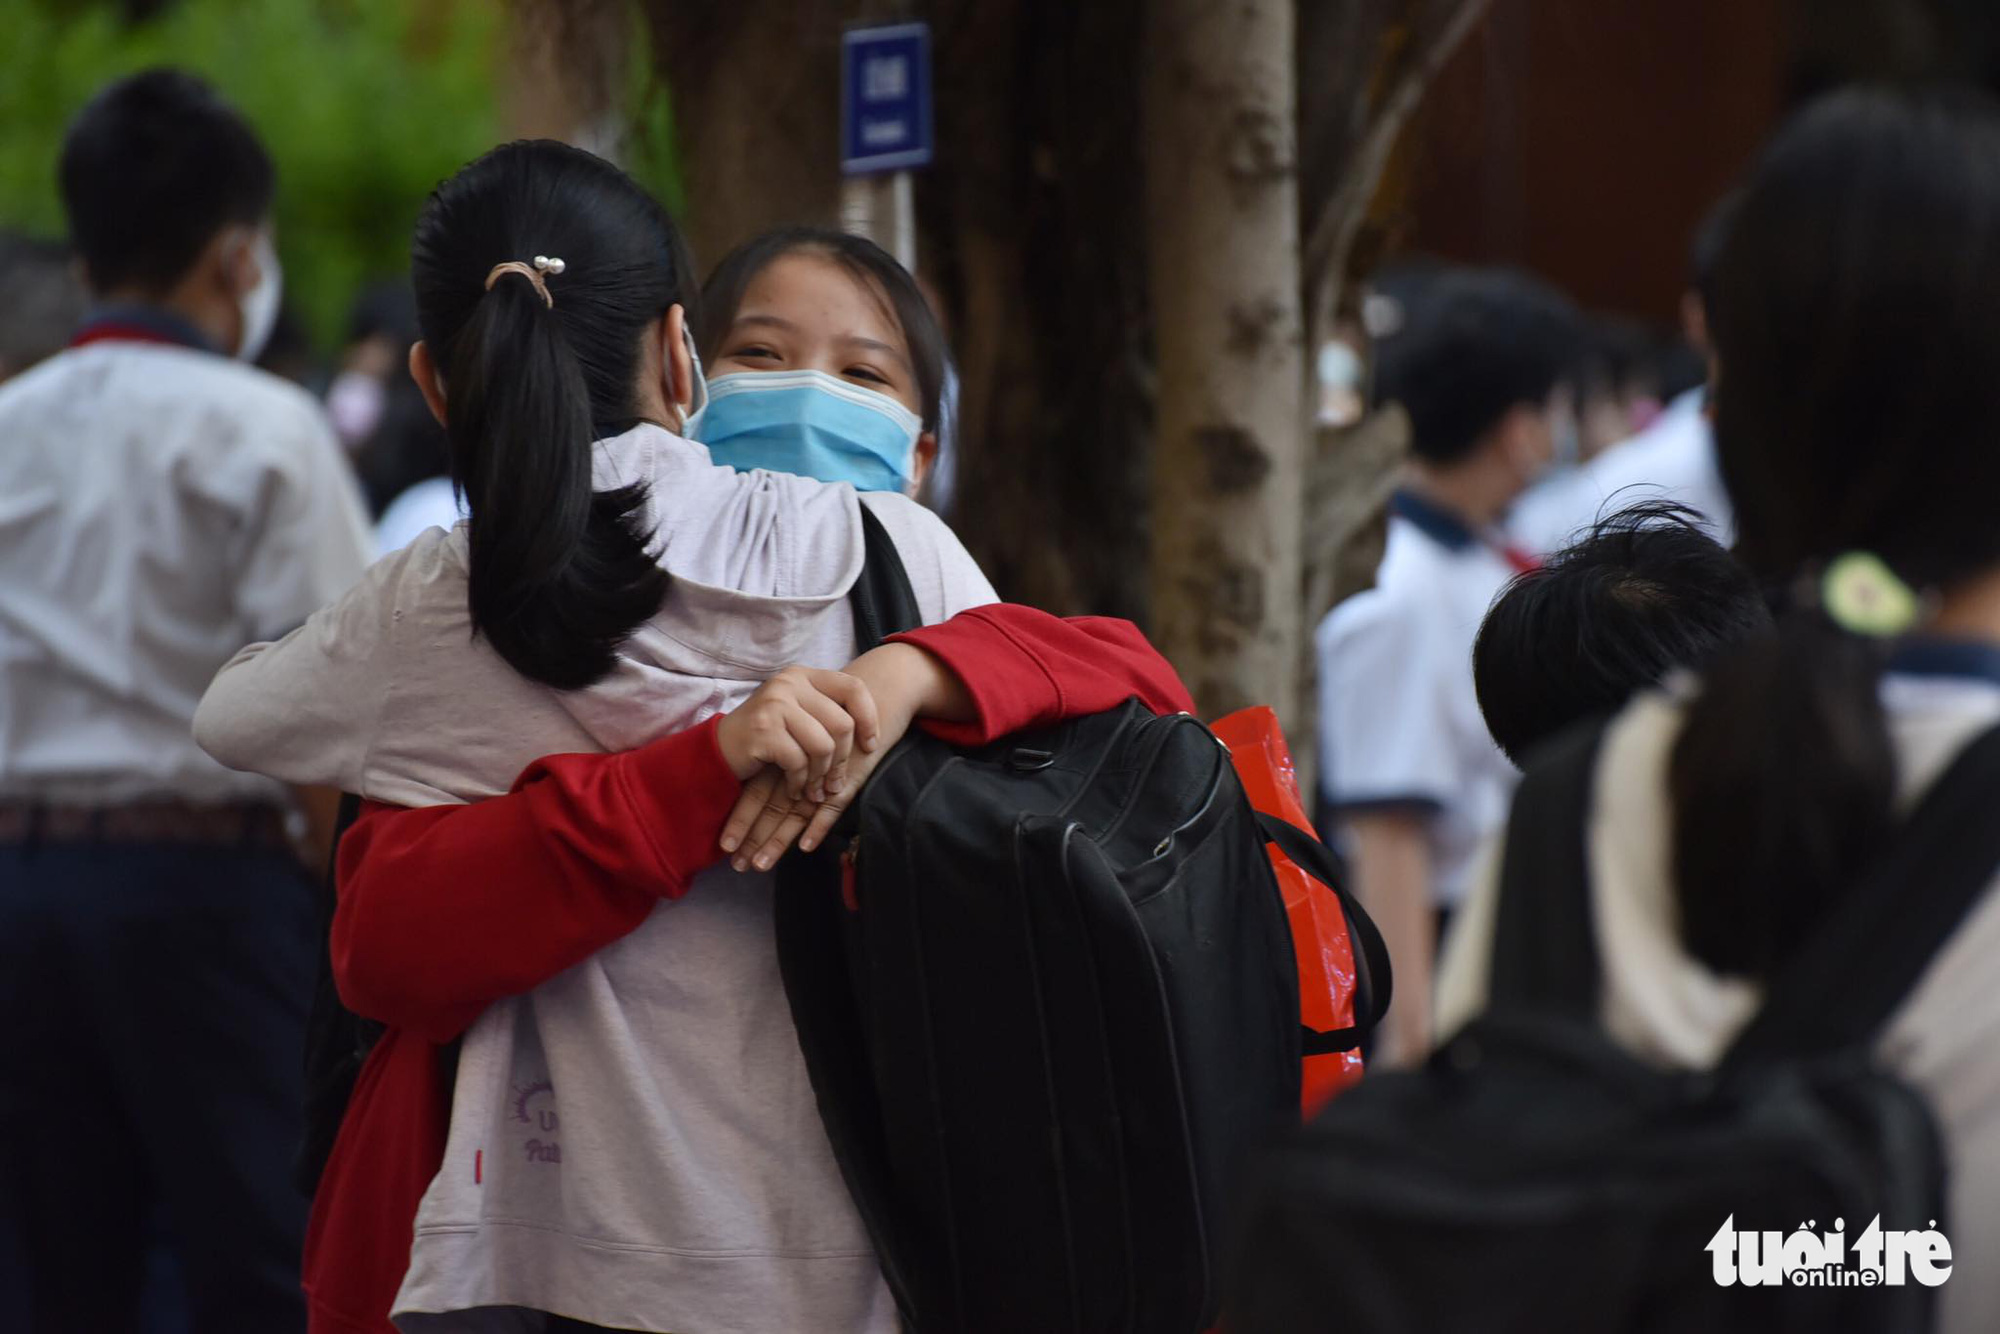 Two students hug each other at Le Van Tam Middle School in Binh Thanh District, Ho Chi Minh City, March 1, 2021. Photo: Ngoc Phuong / Tuoi Tre